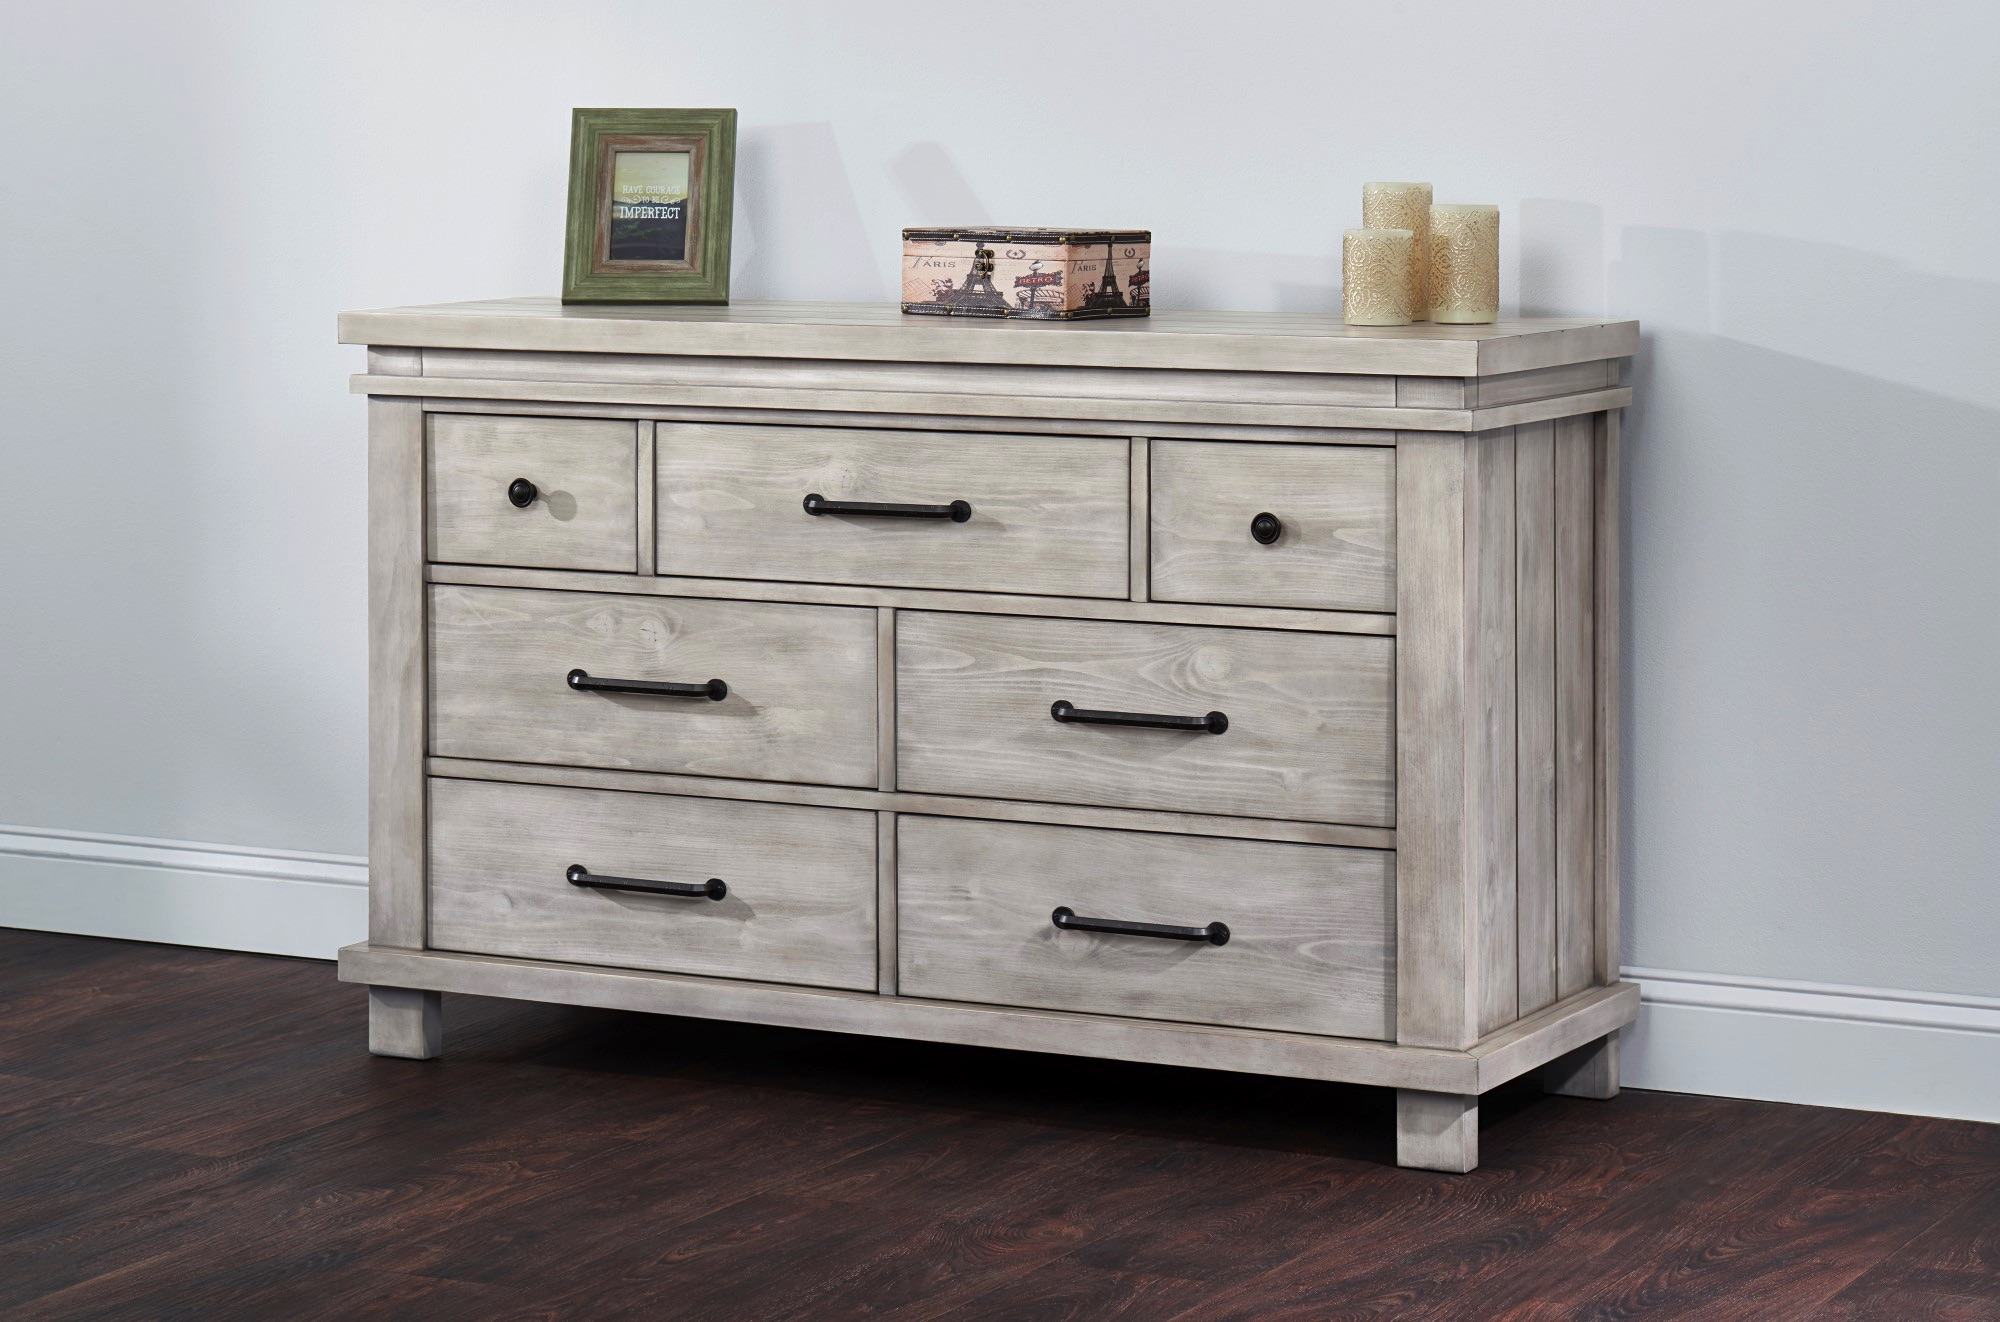 htm baystorm ashley furniture dresser from sw gray coleman